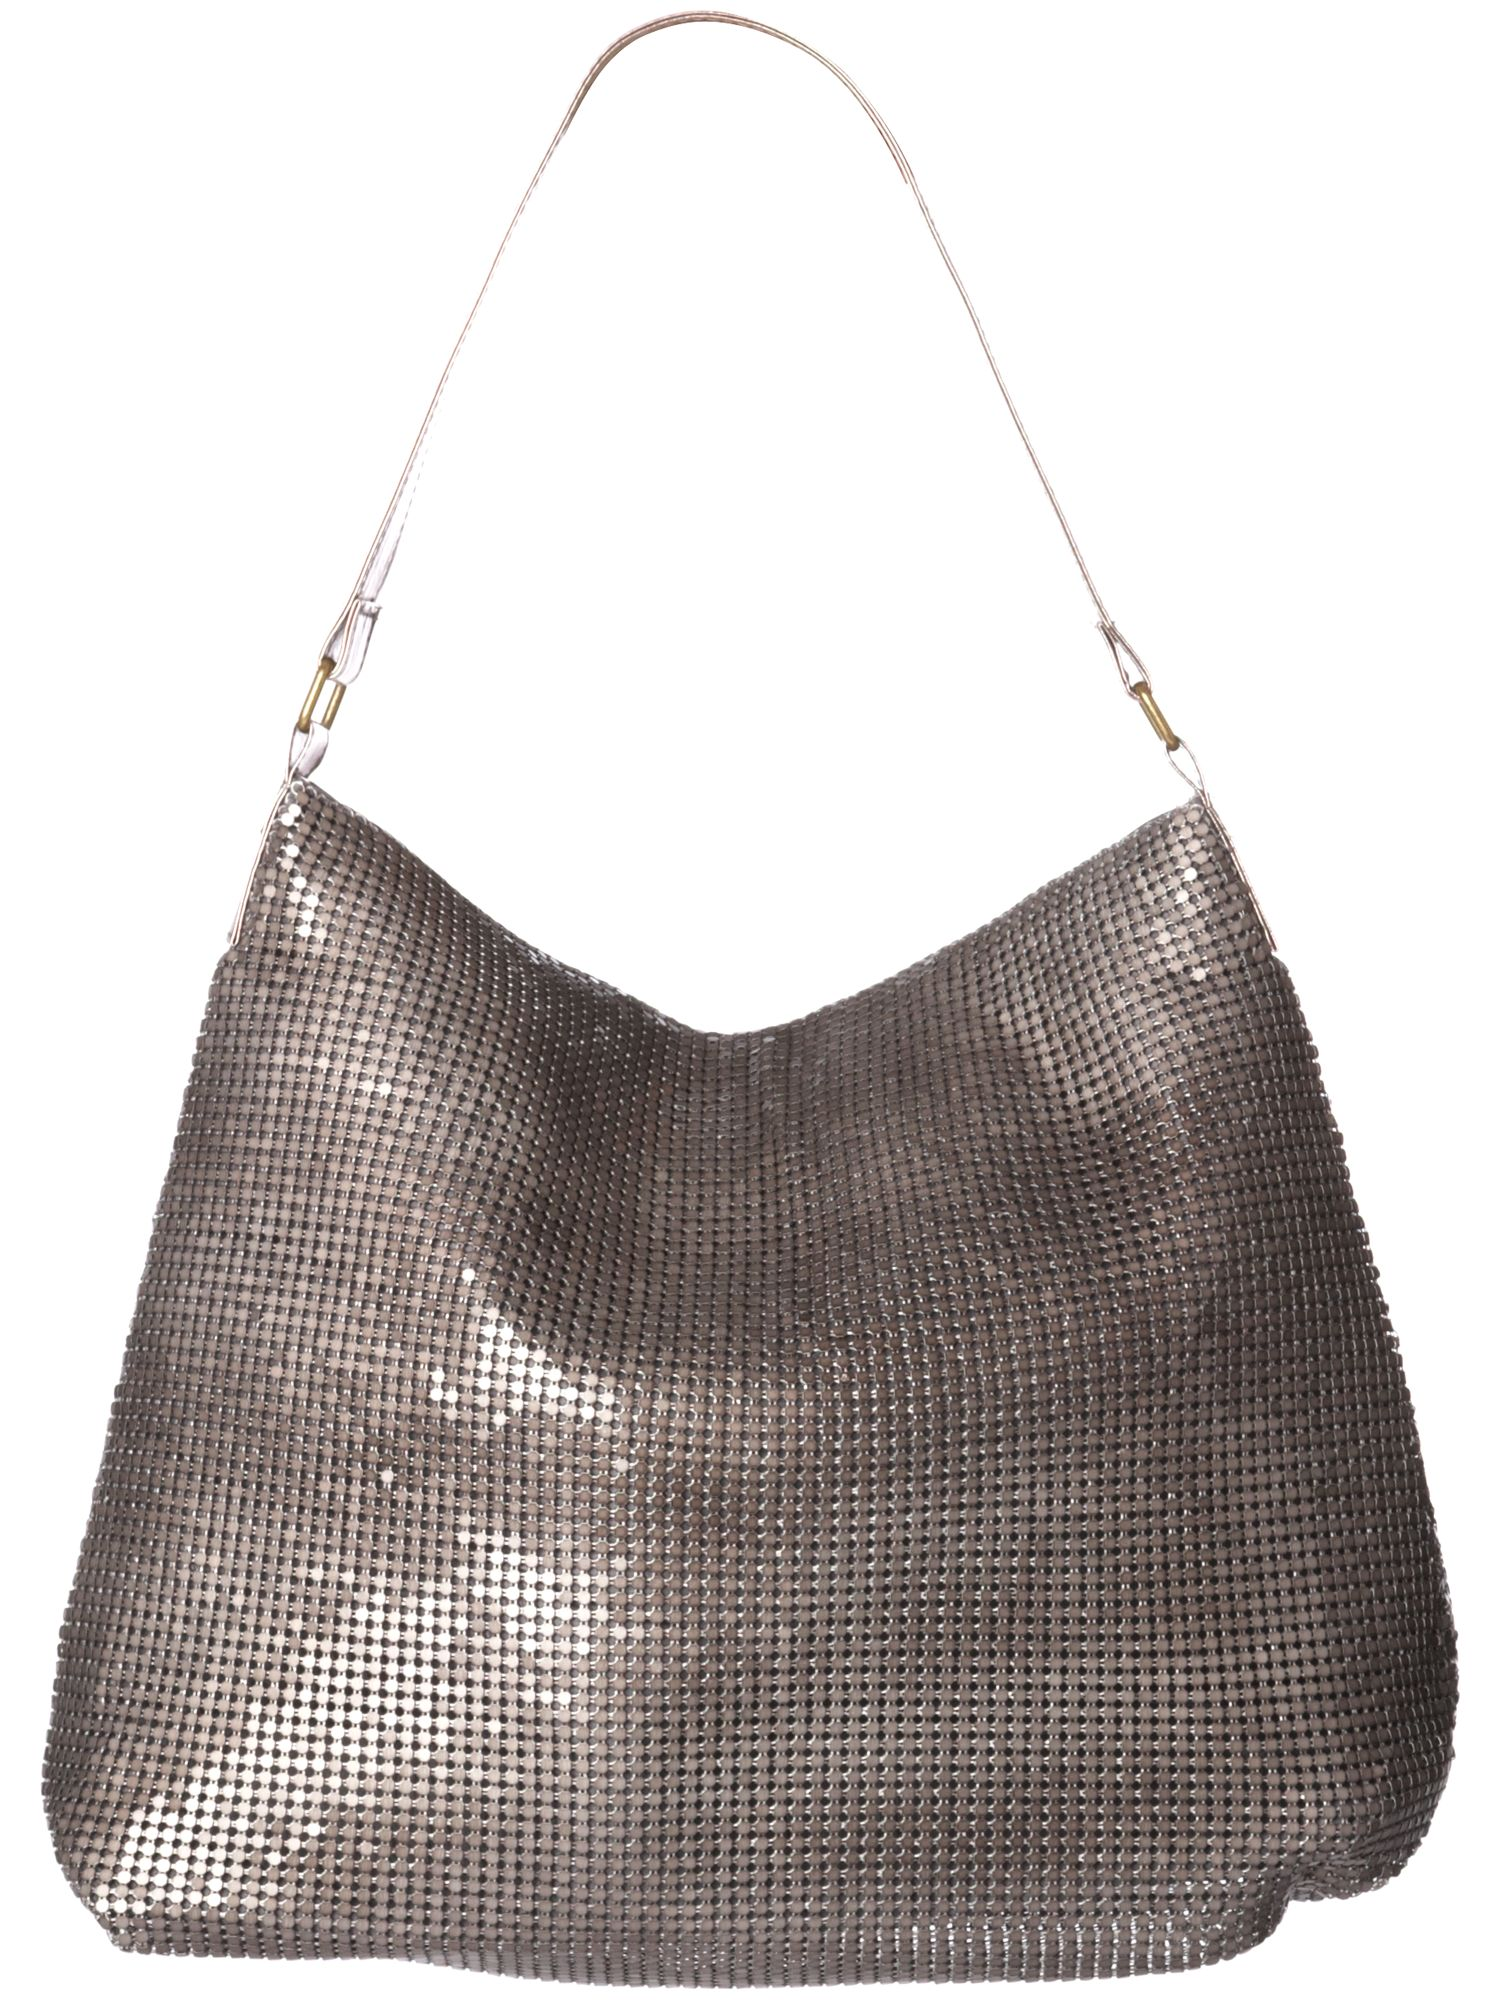 Therapy GI Jane chainmail slouch hobo bag product image